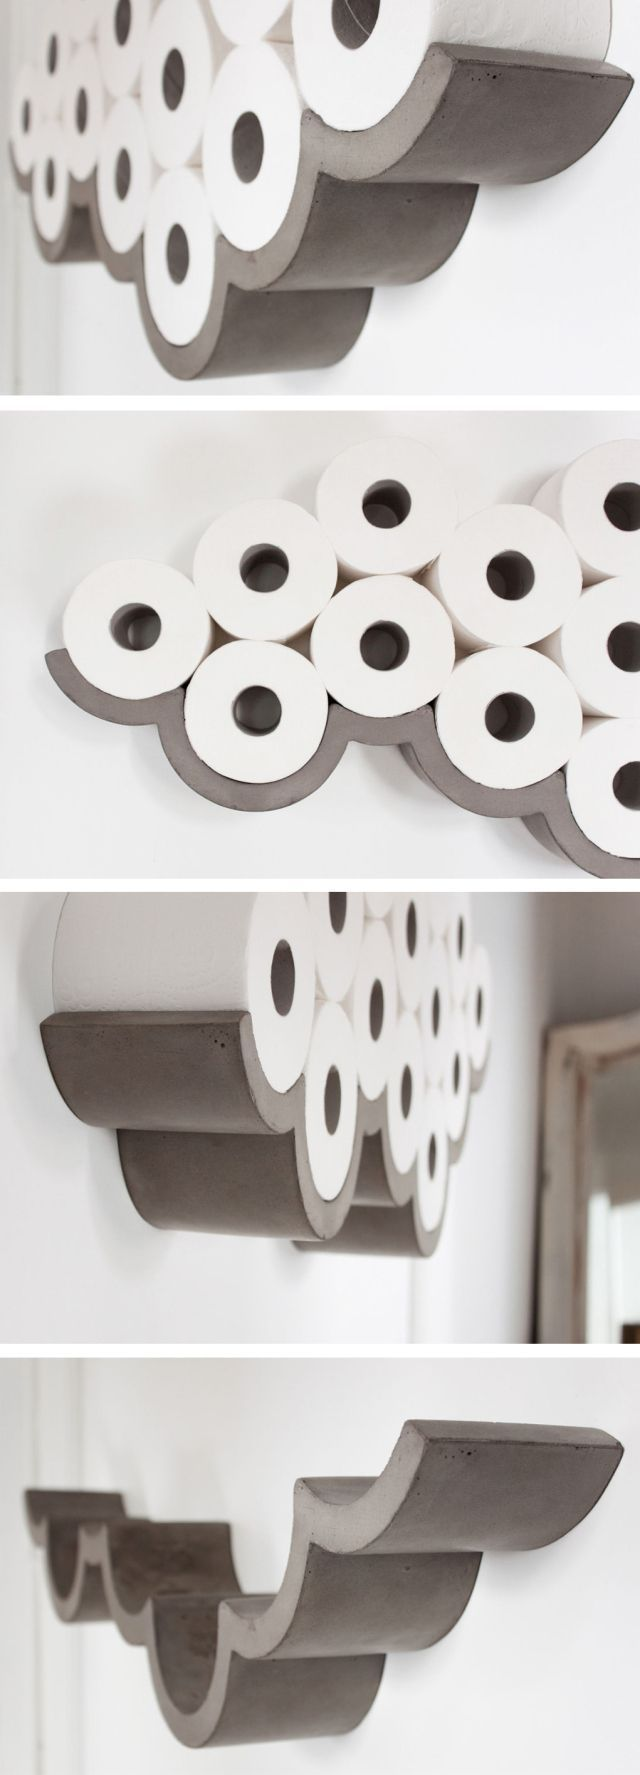 Awesome Products: Cloud concrete toilet roll holder #toiletpaperrolldecor